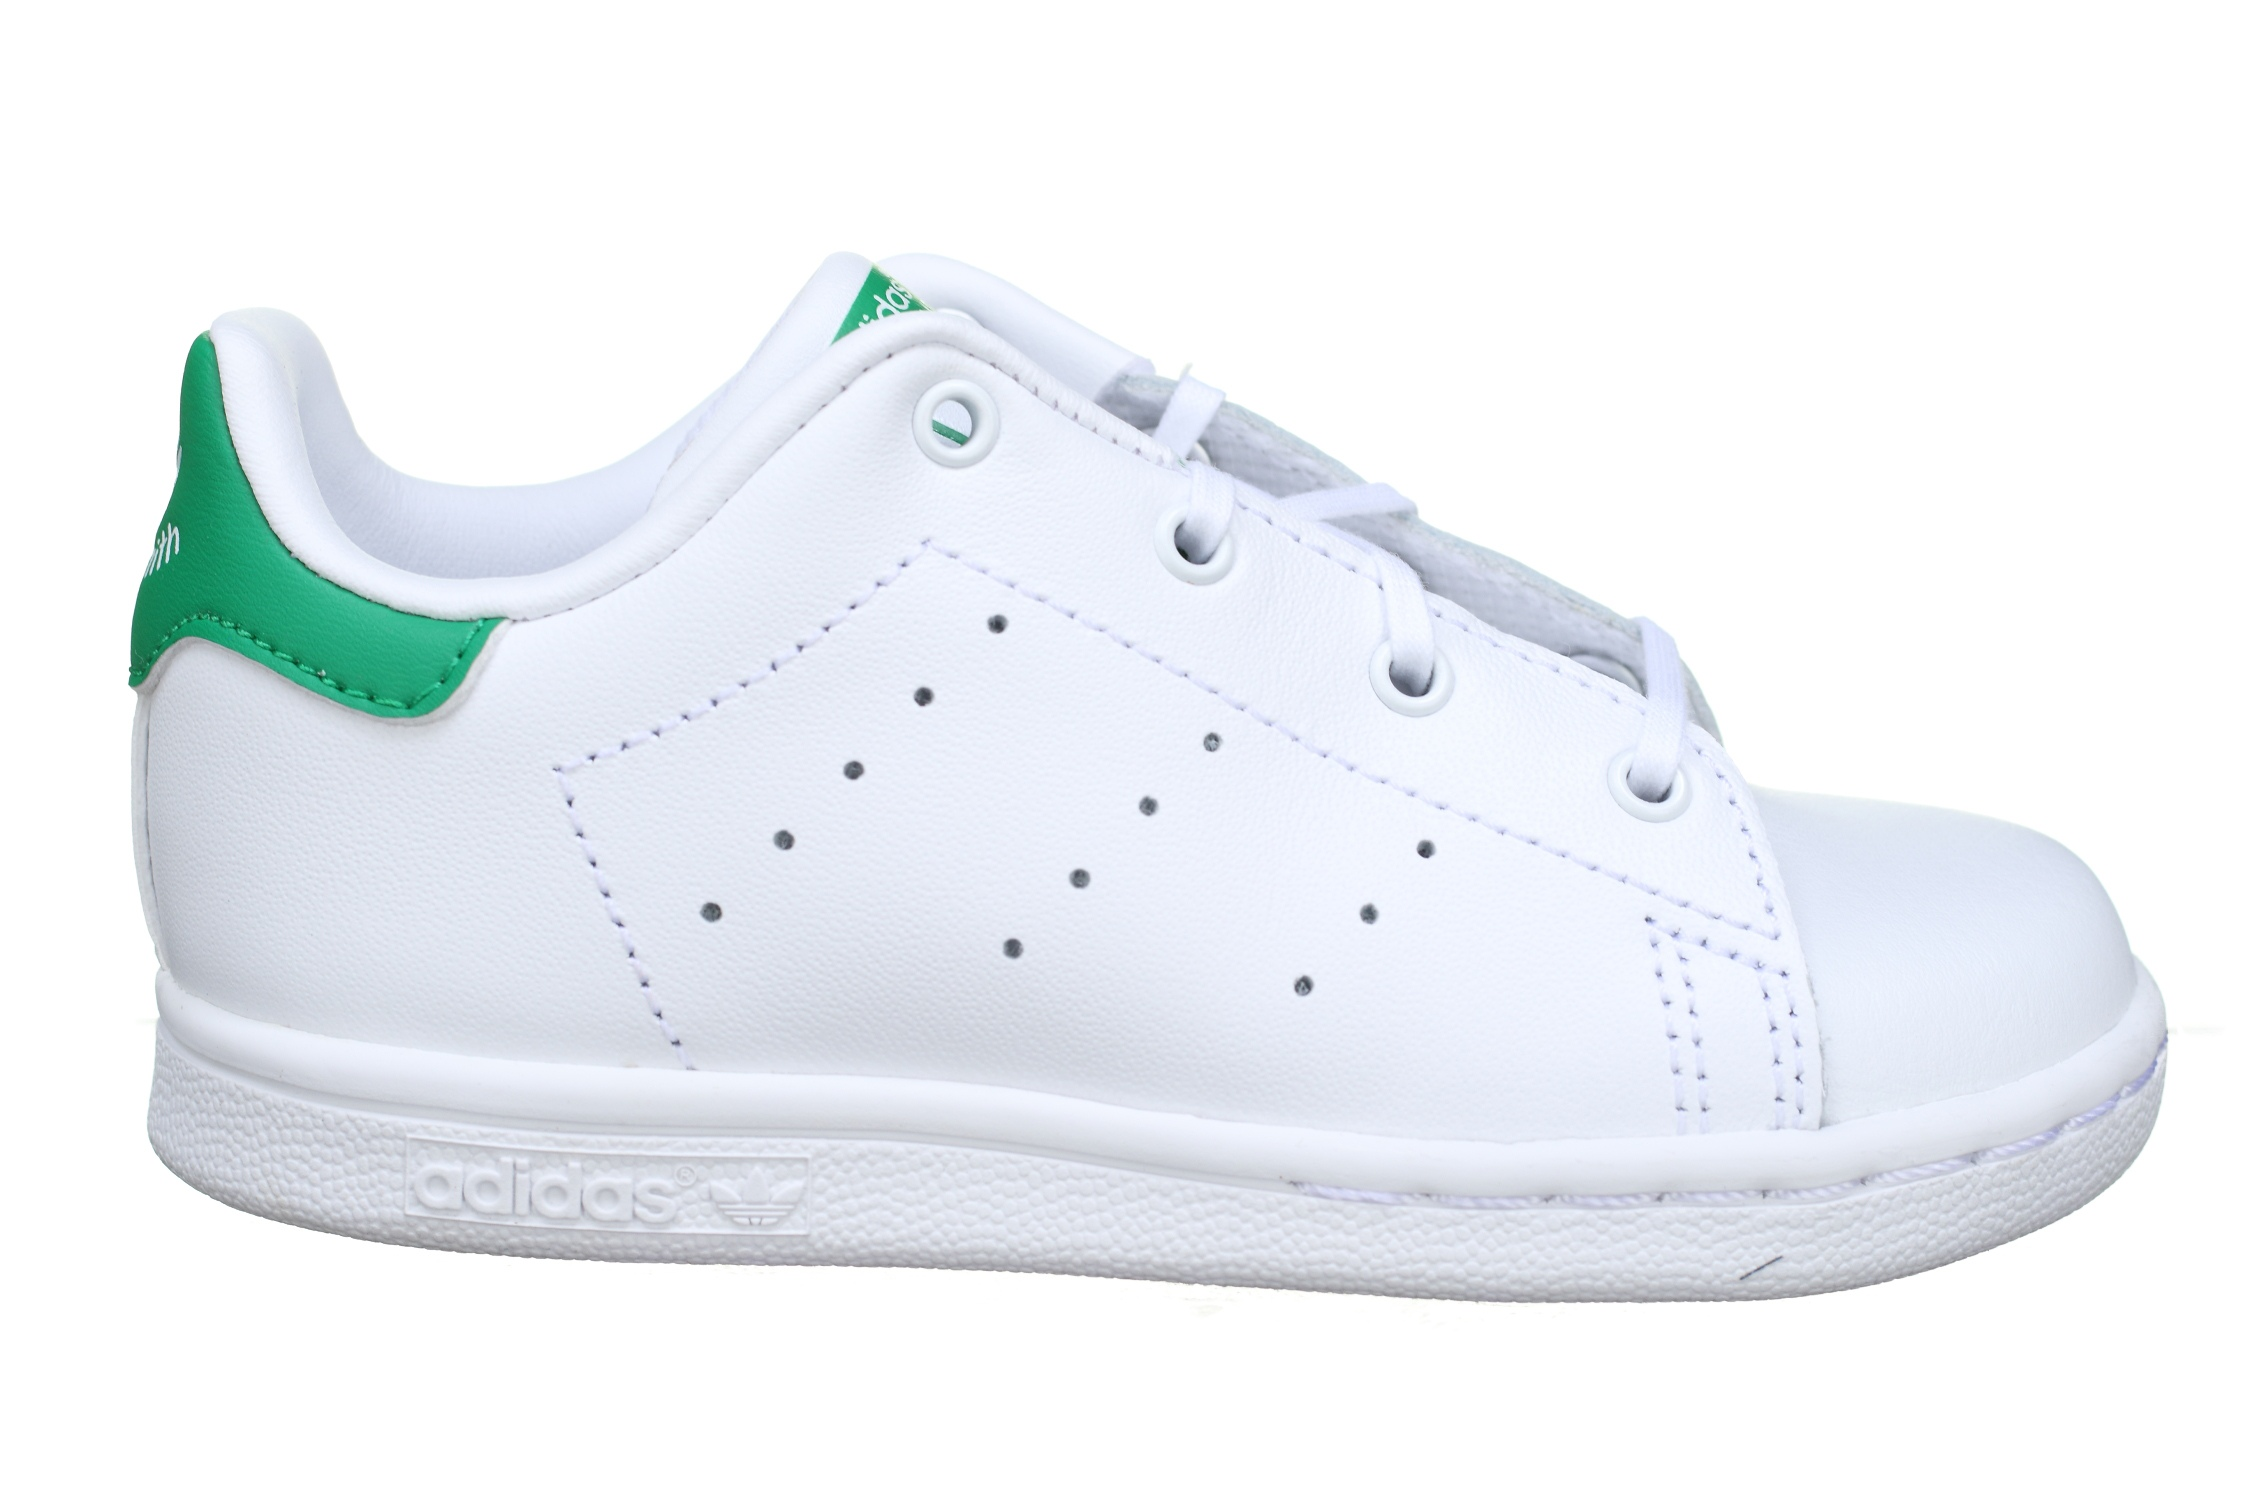 http://www.leadermode.com/164684/adidas-stan-smith-i-bb2998-blanc-vert.jpg